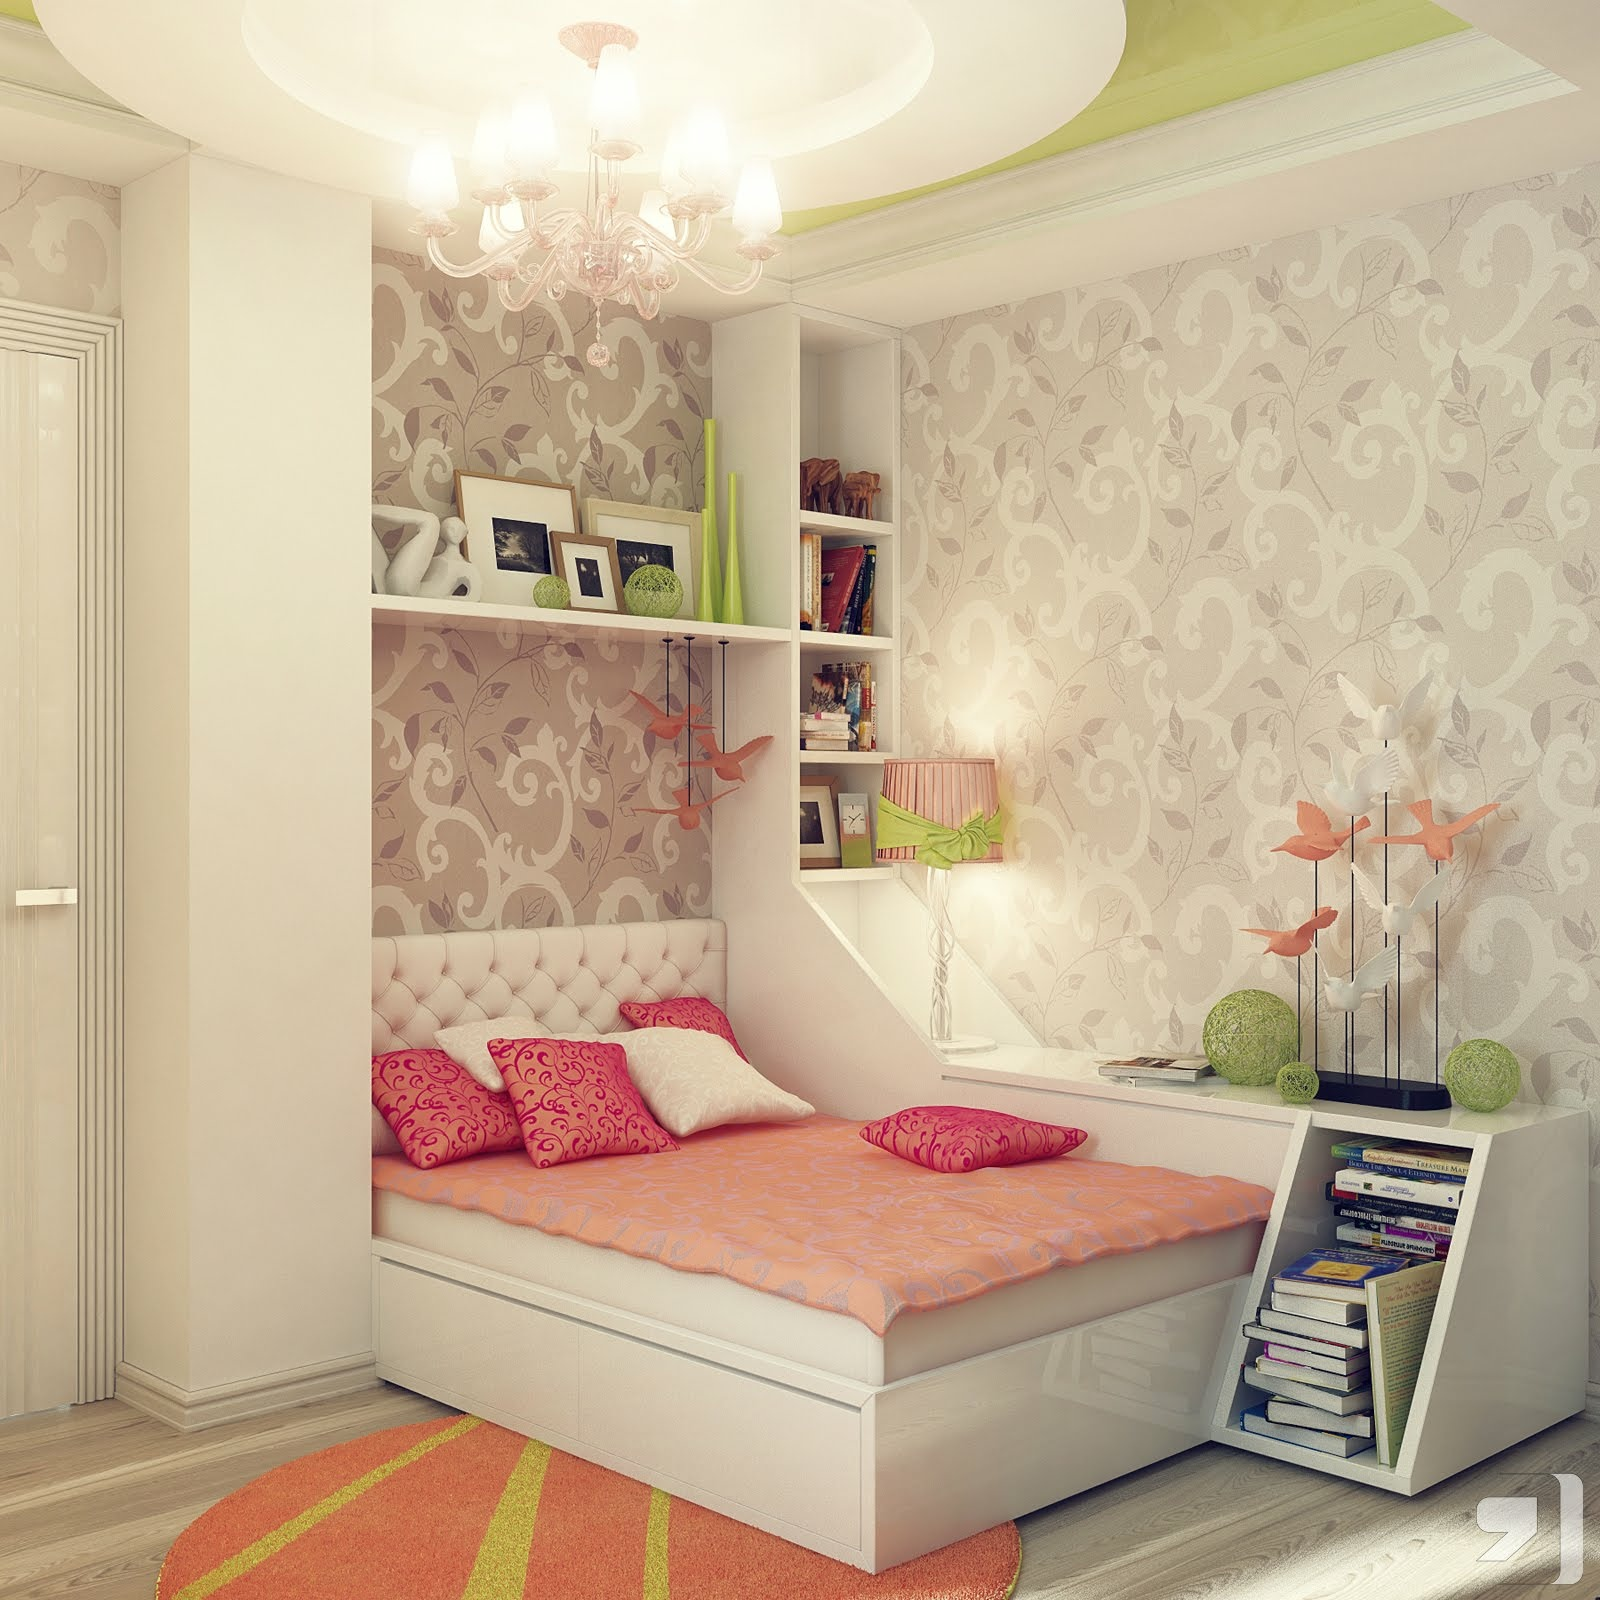 Living Room Decorations Room 1000 images about teen bedroom on pinterest bedding wall learn more at home designing com